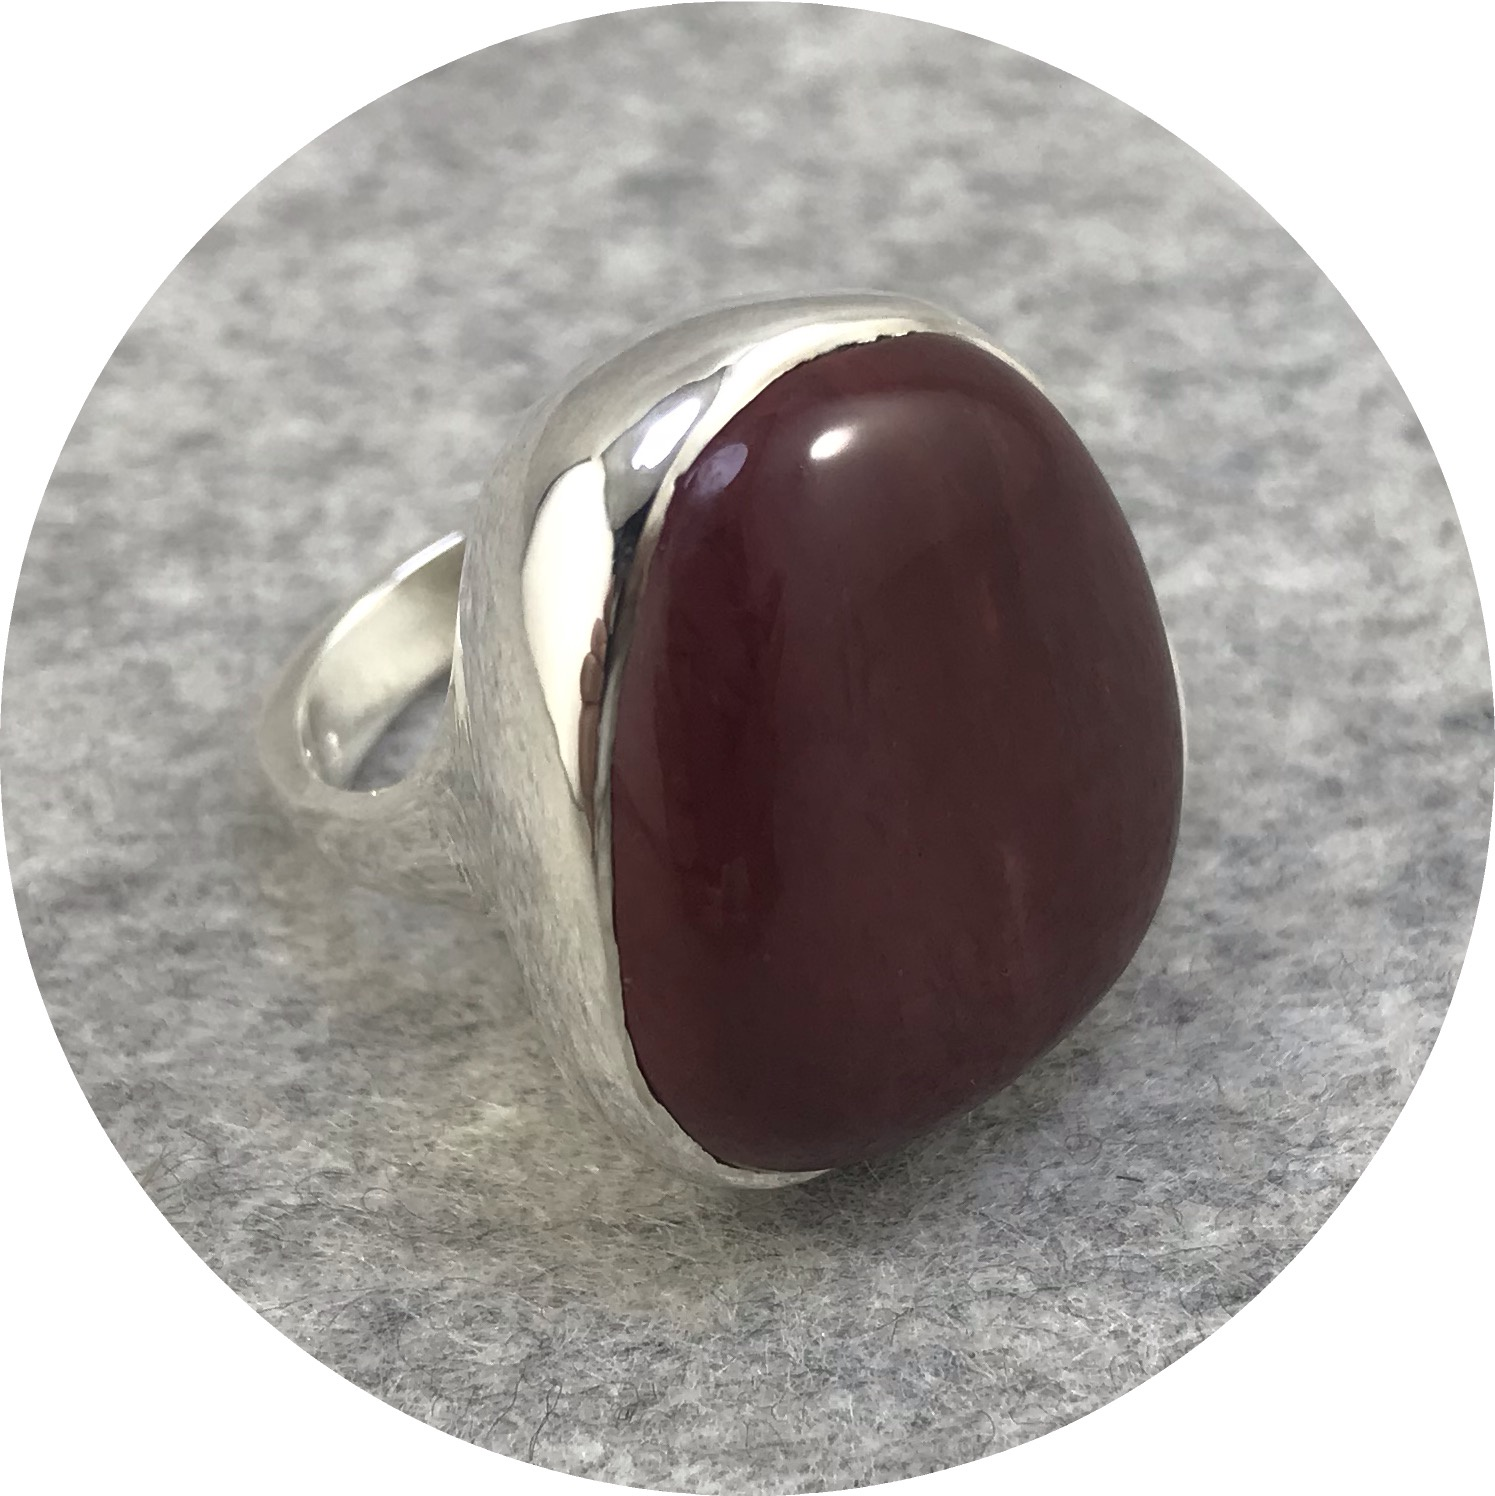 Leonie Simpson - Mookaite Stone set in a Sterling Silver Ring